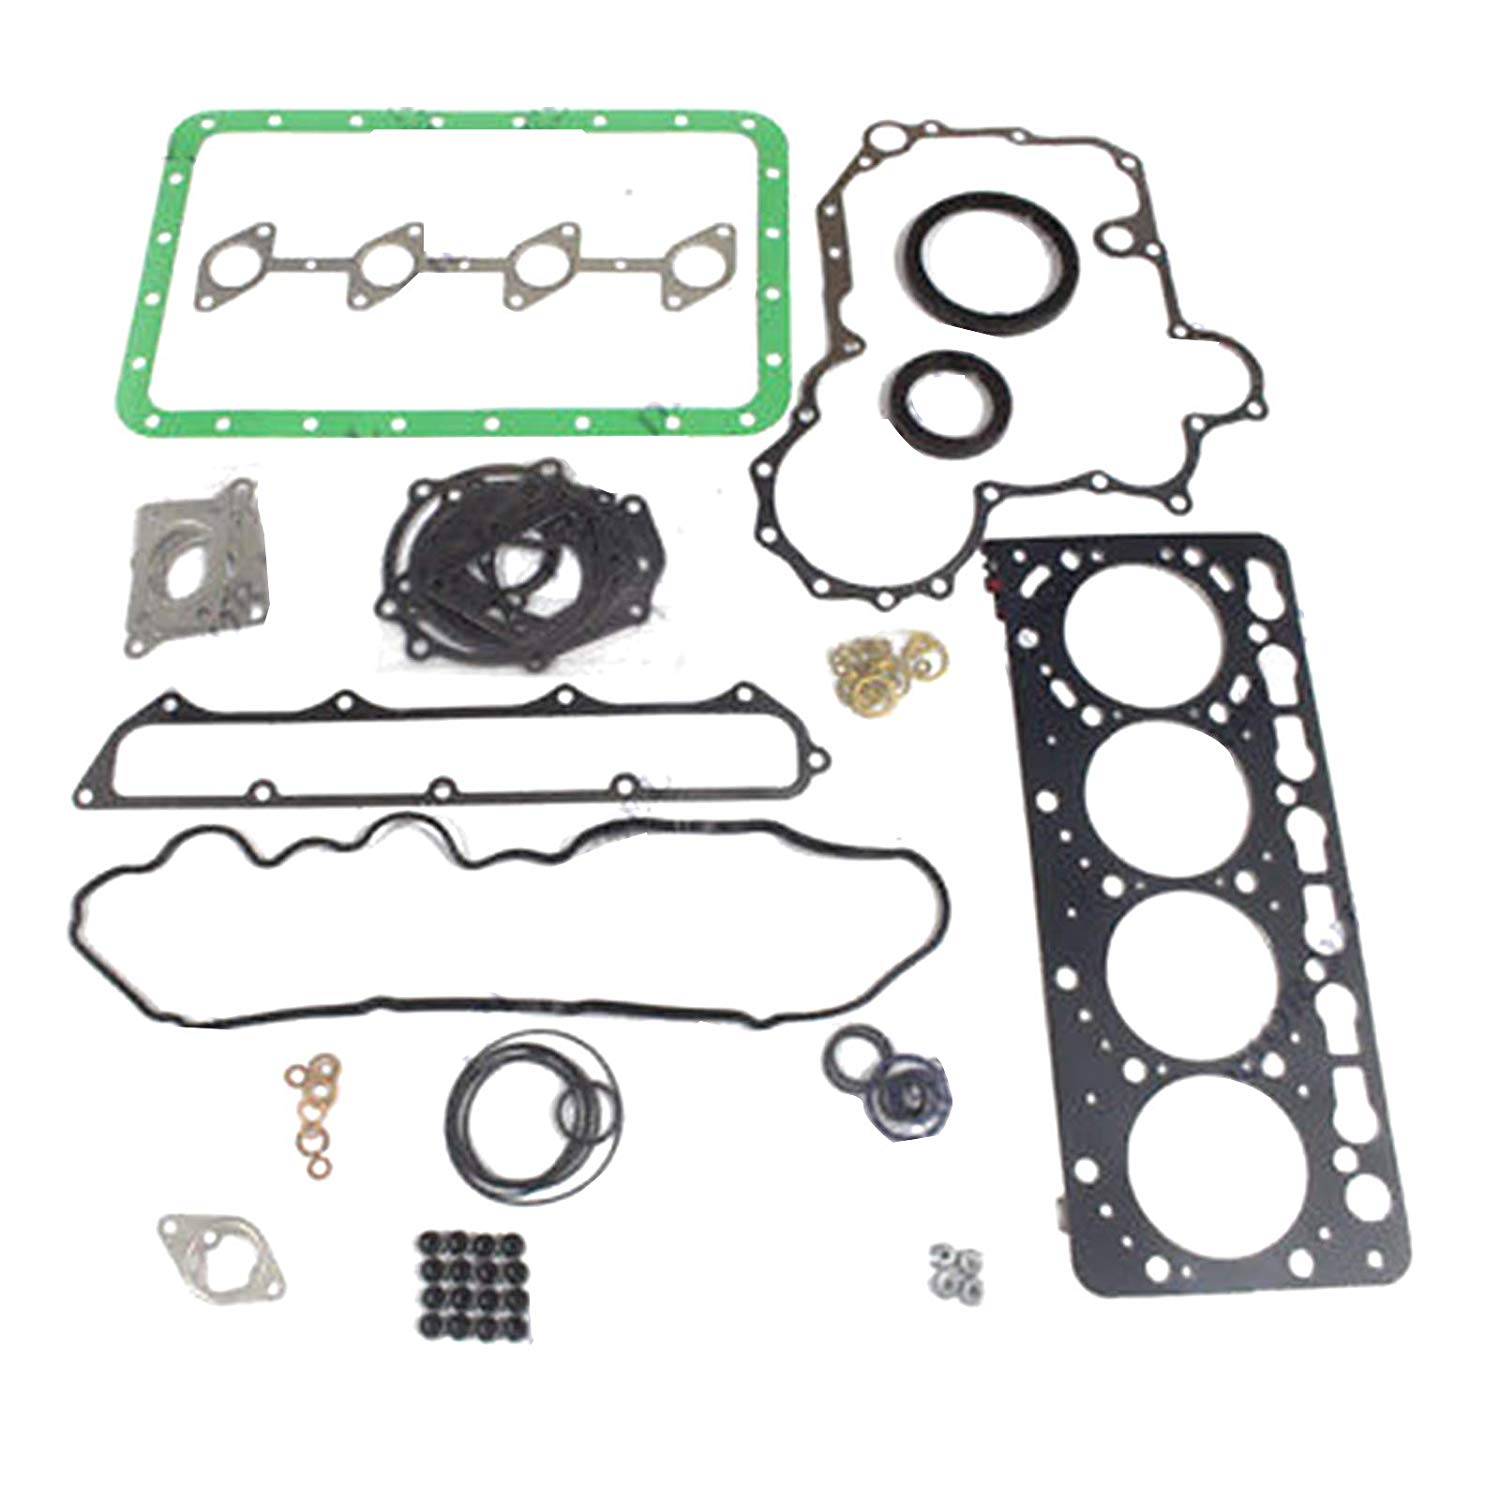 US $117 42 5% OFF|V3800 V3800T Engine Overhaul Gasket Kit for Kubota Bobcat  Excavator 1G574 99355 Excavator Aftermarket Parts-in Pistons, Rings, Rods